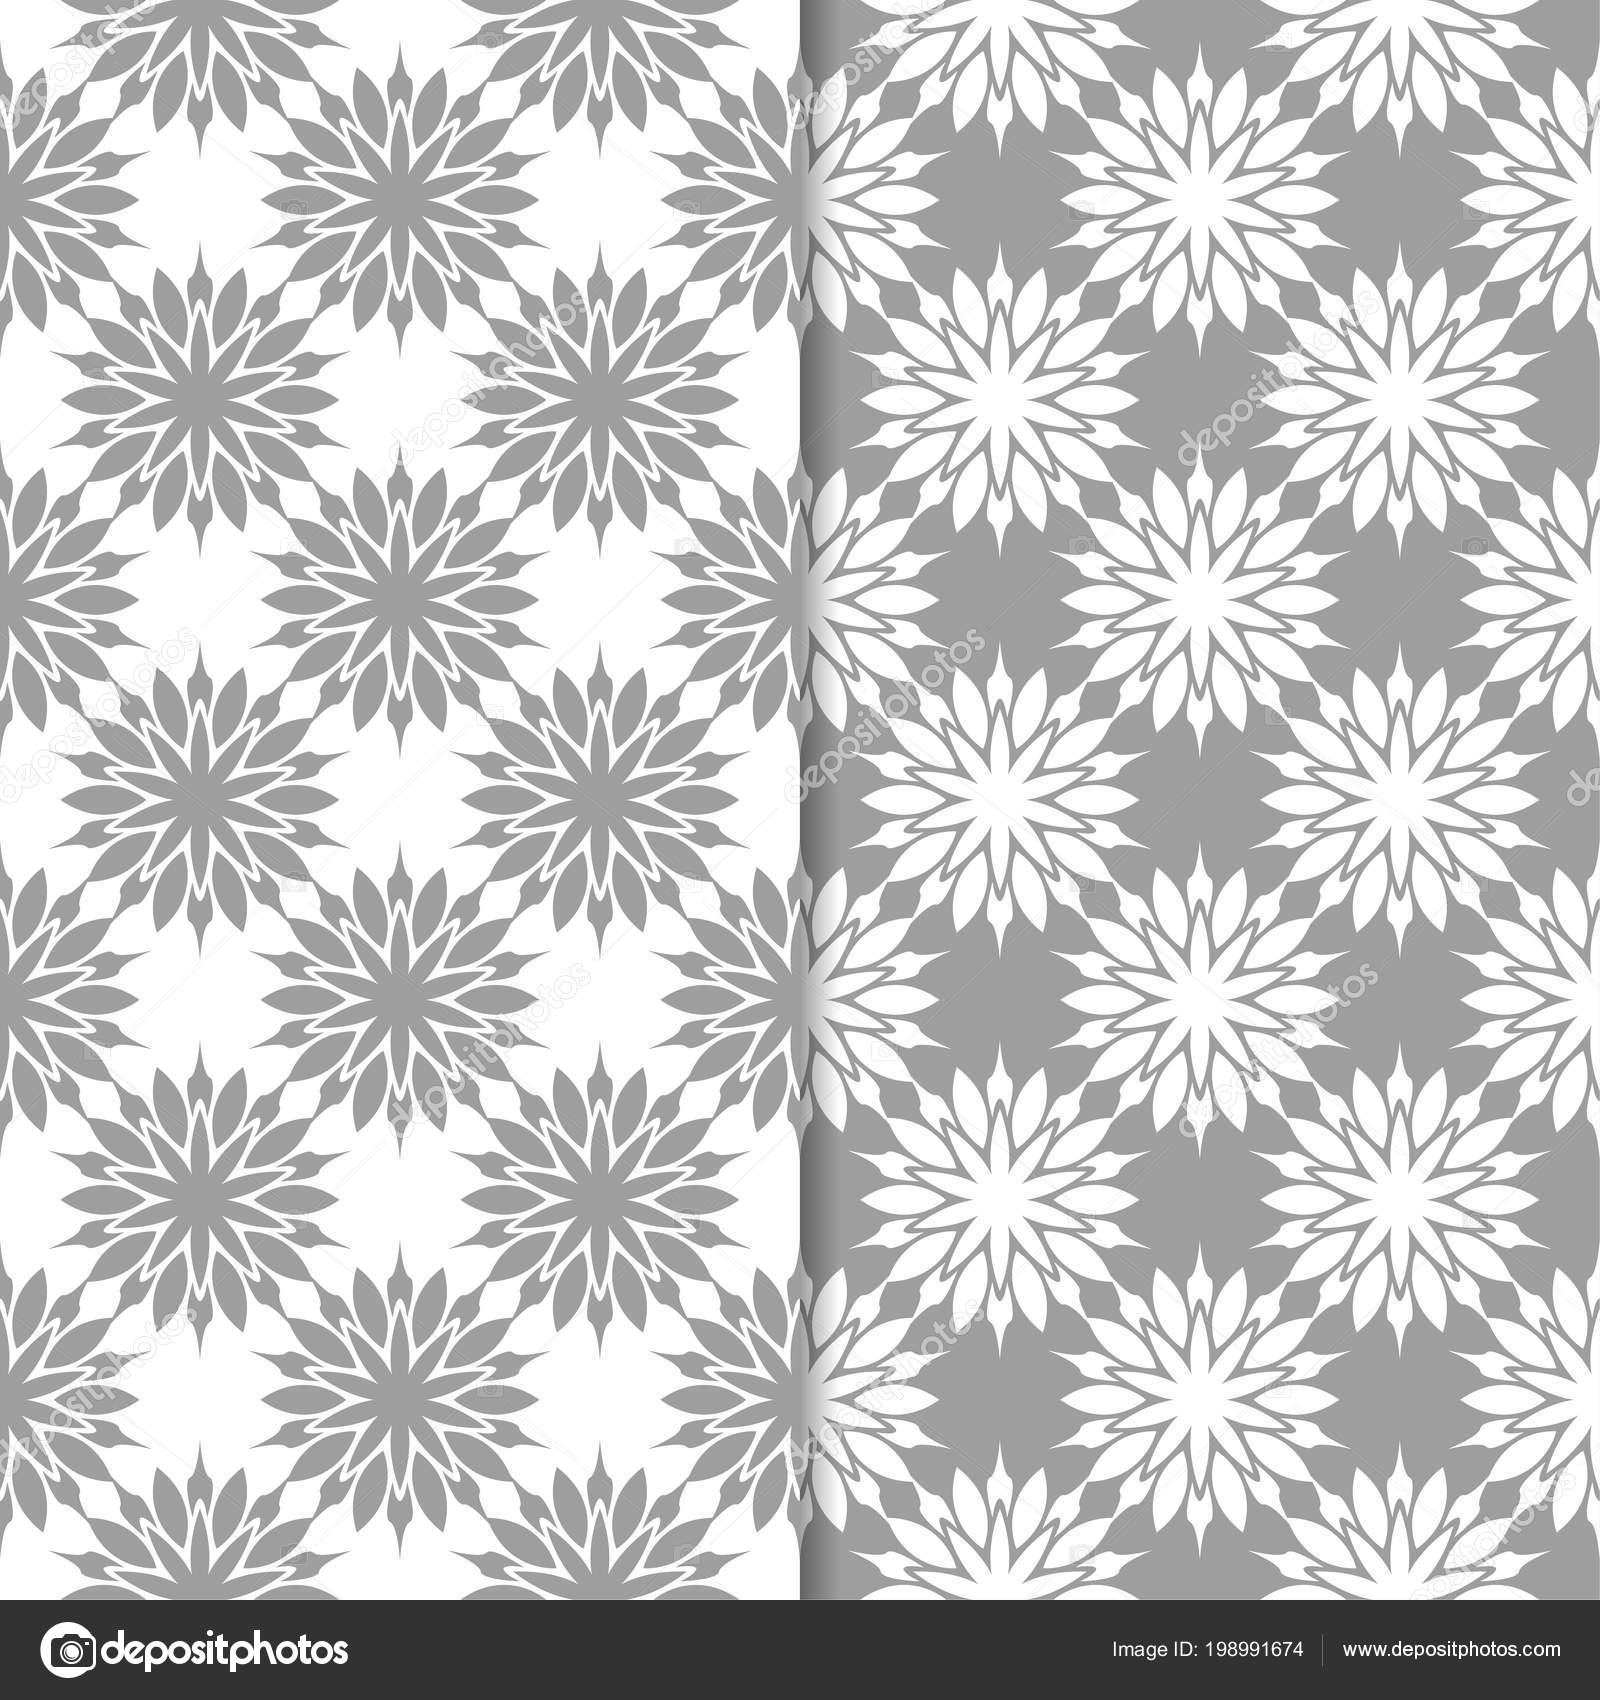 White Gray Floral Backgrounds Set Seamless Patterns Textile Wallpapers Stock